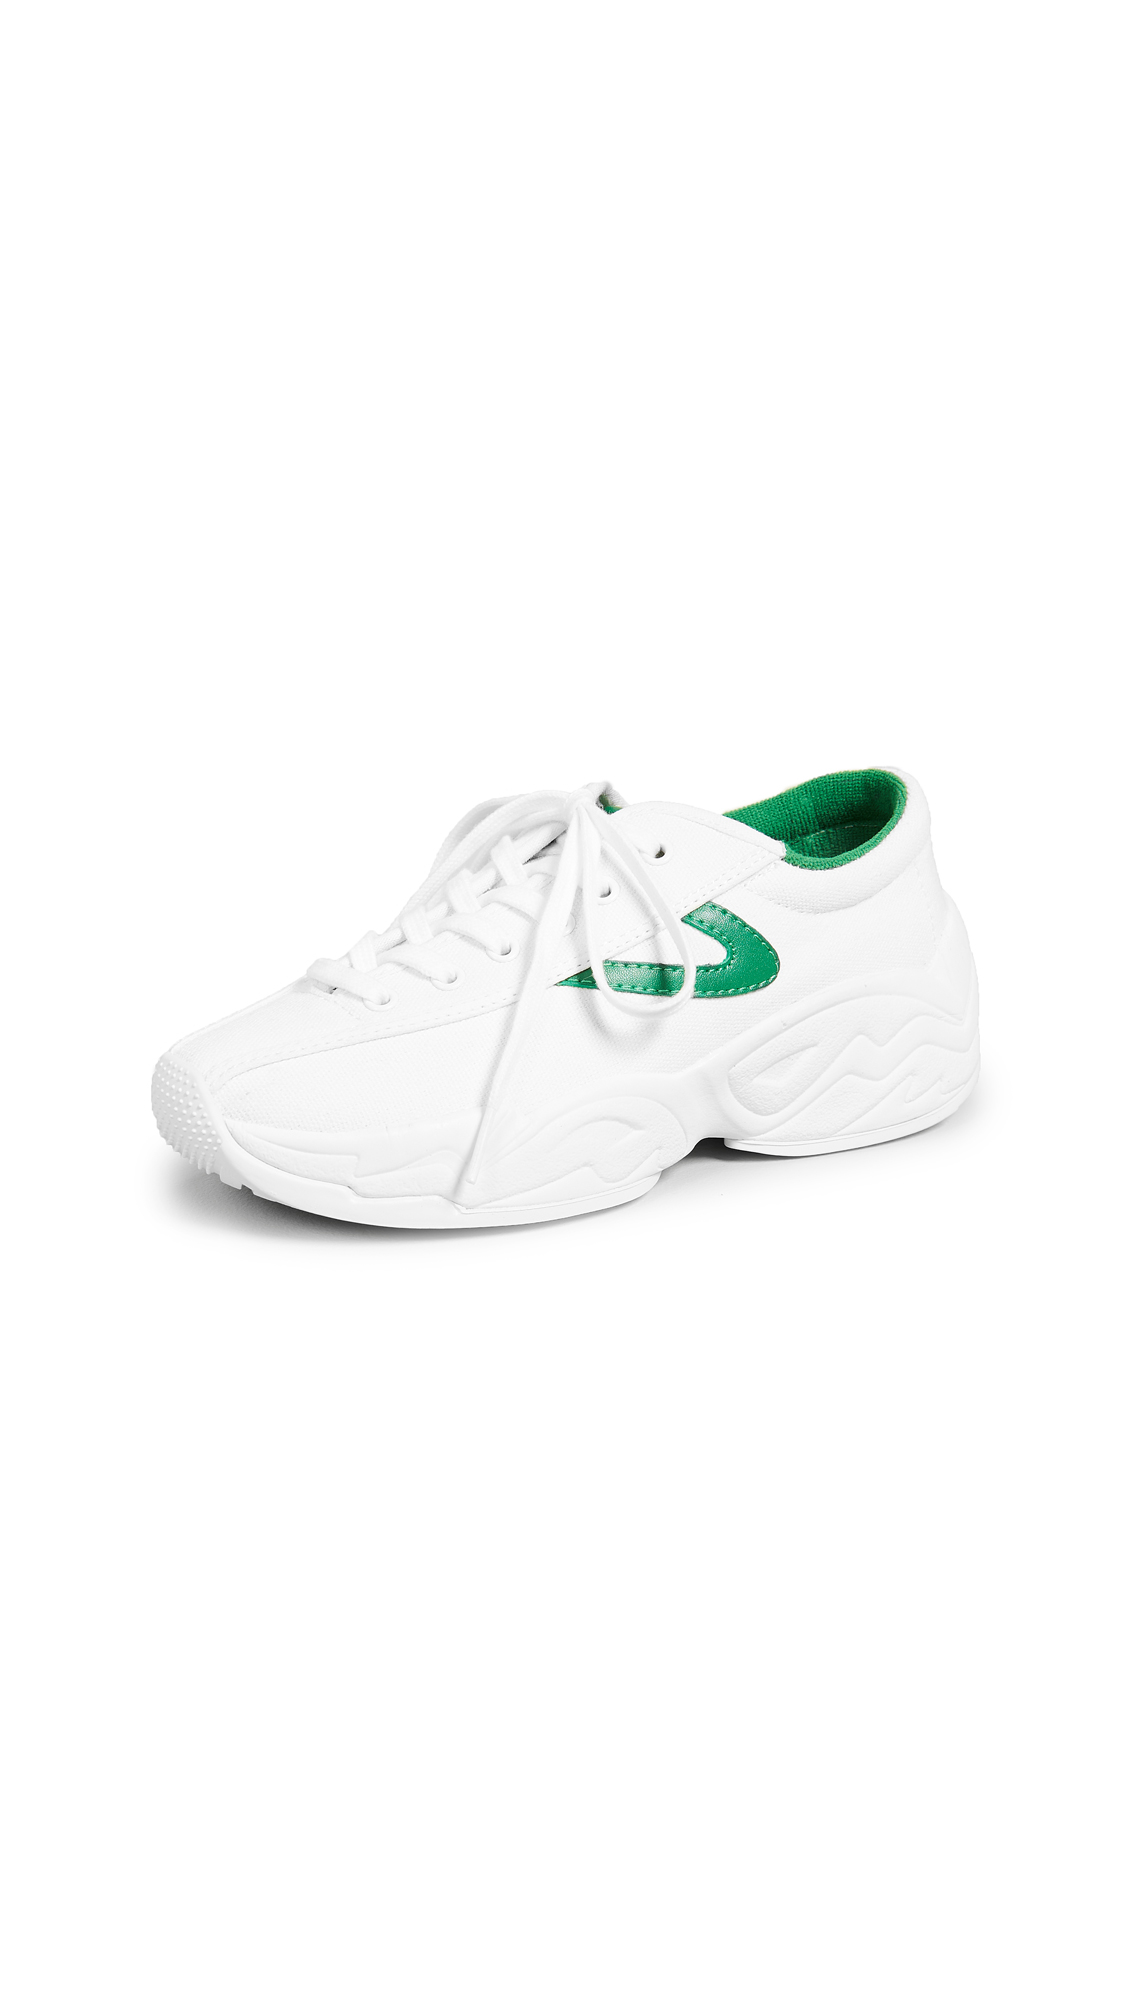 Tretorn Nylite Fly Sneakers - Vintage White/Green